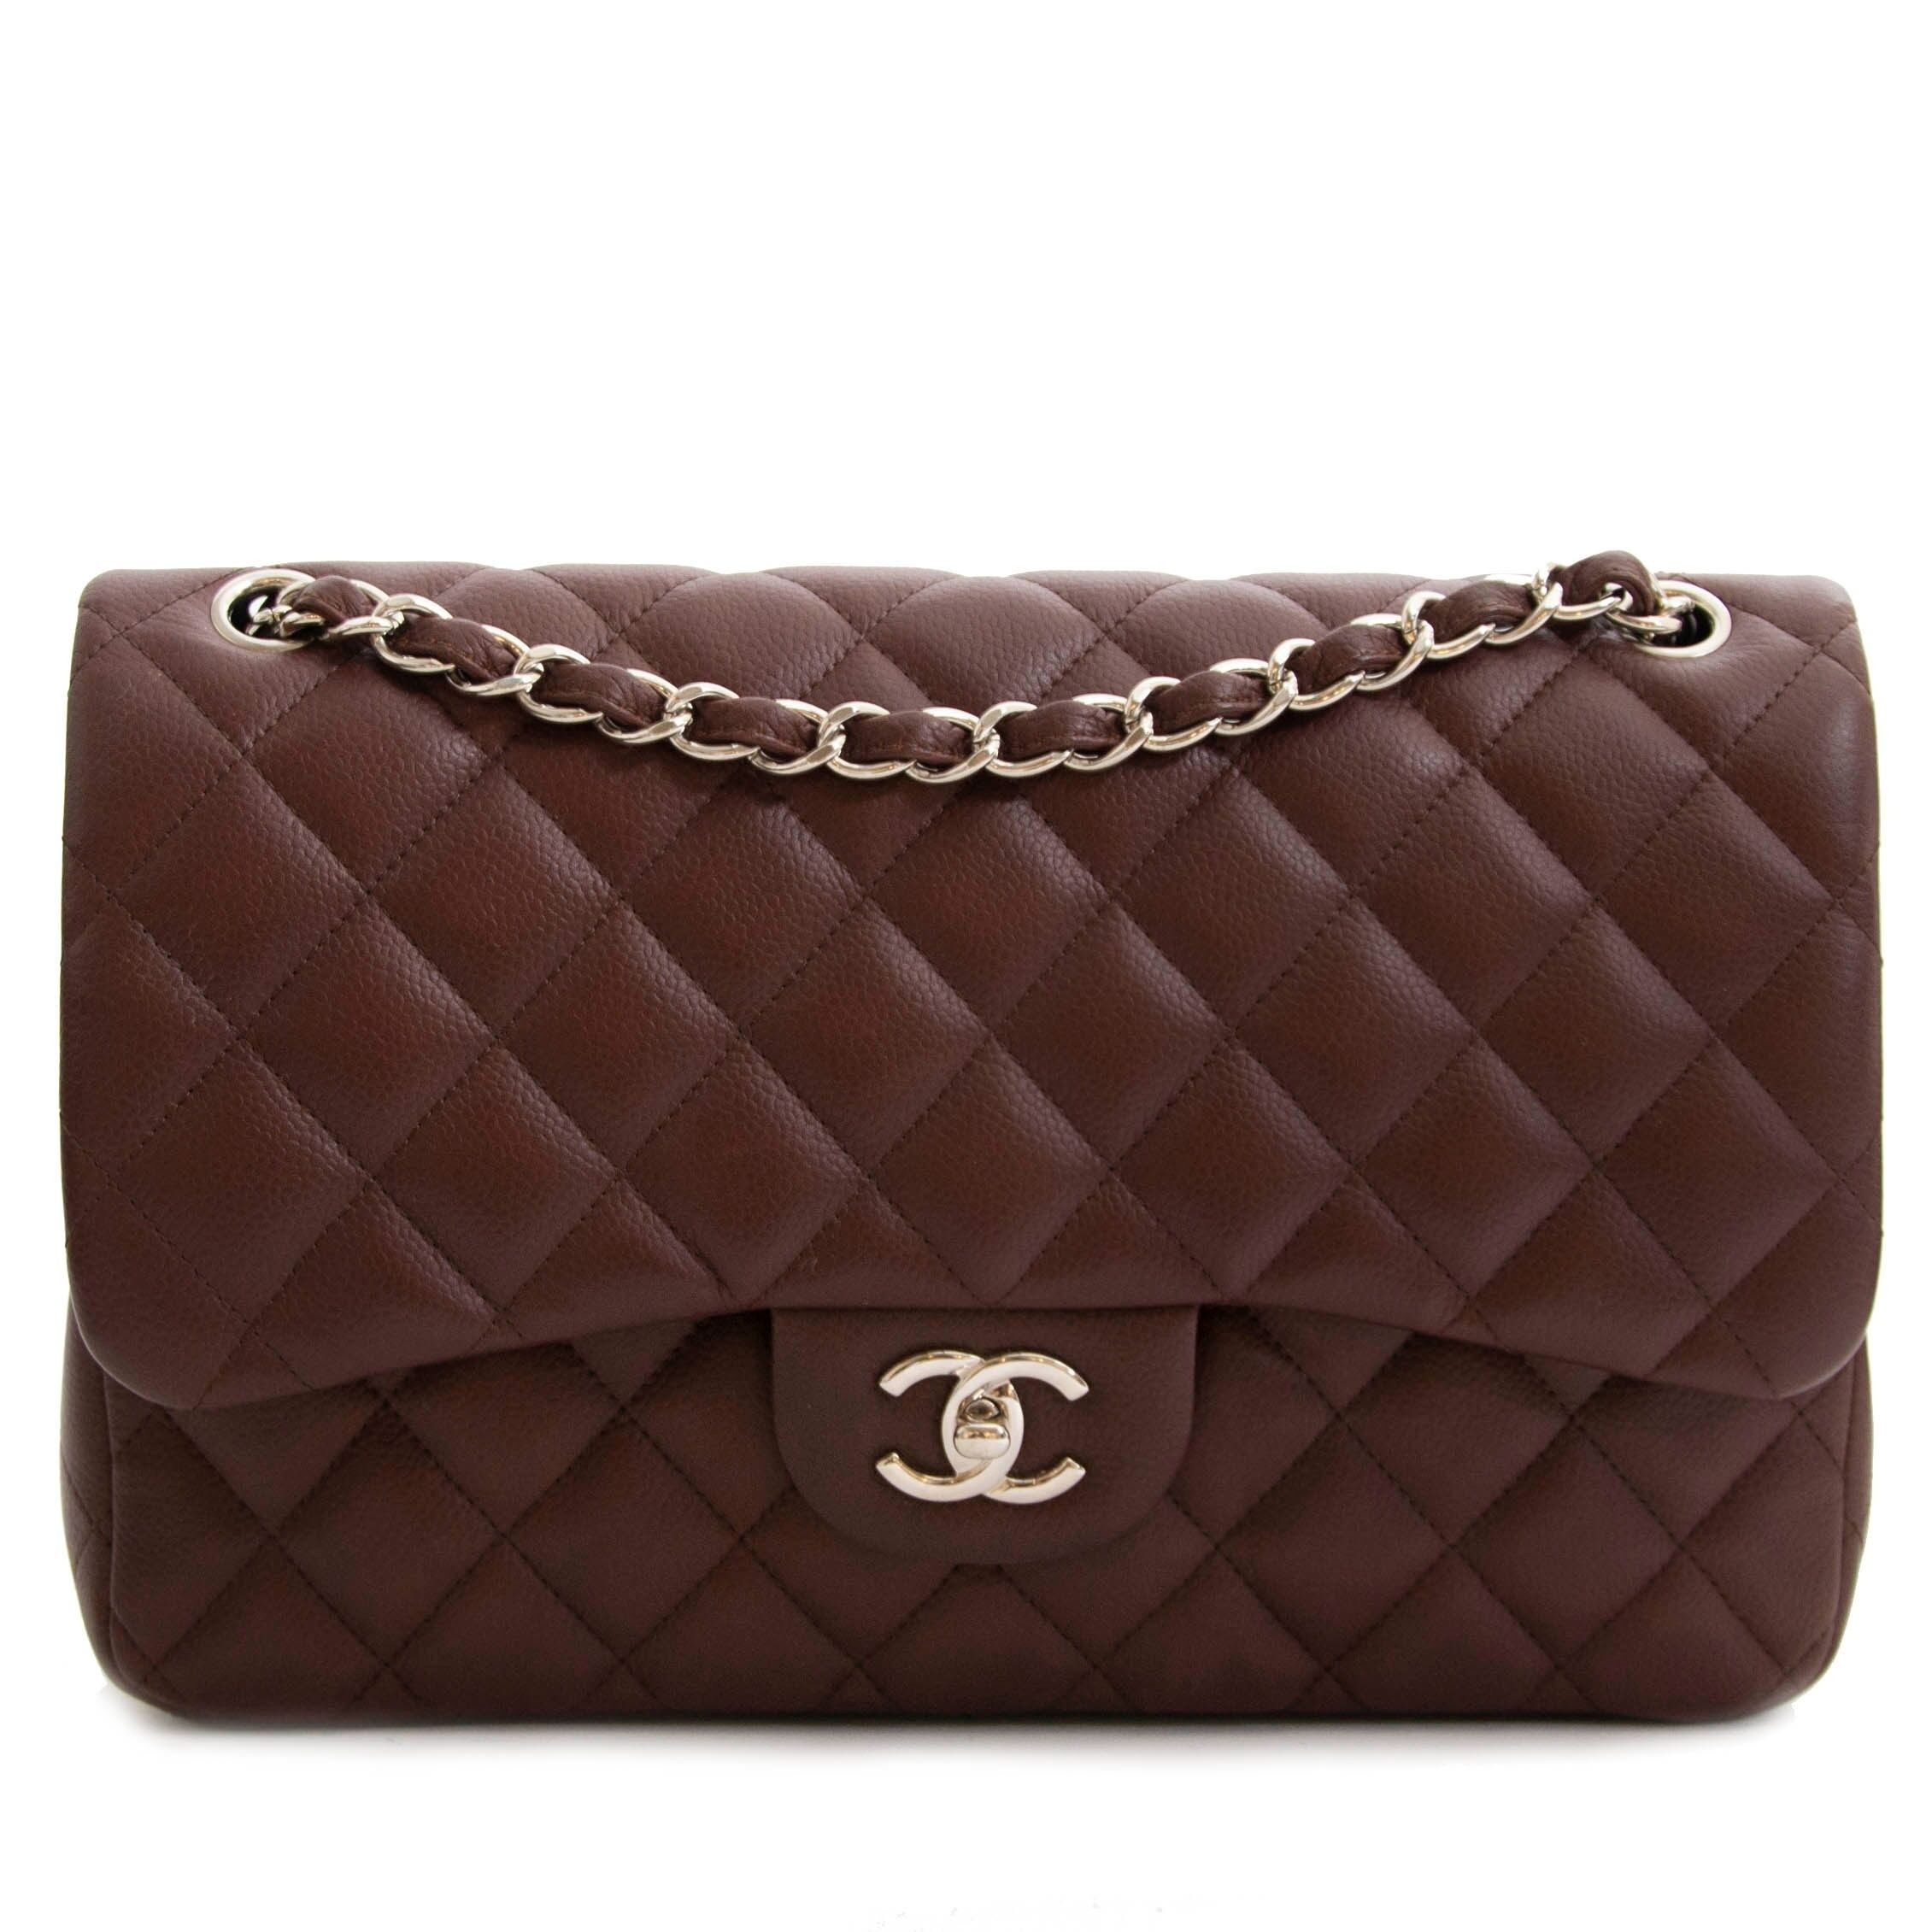 407920d8 Chanel Chocolate Brown Caviar Classic Jumbo Flap Bag | Shop Labellov ...